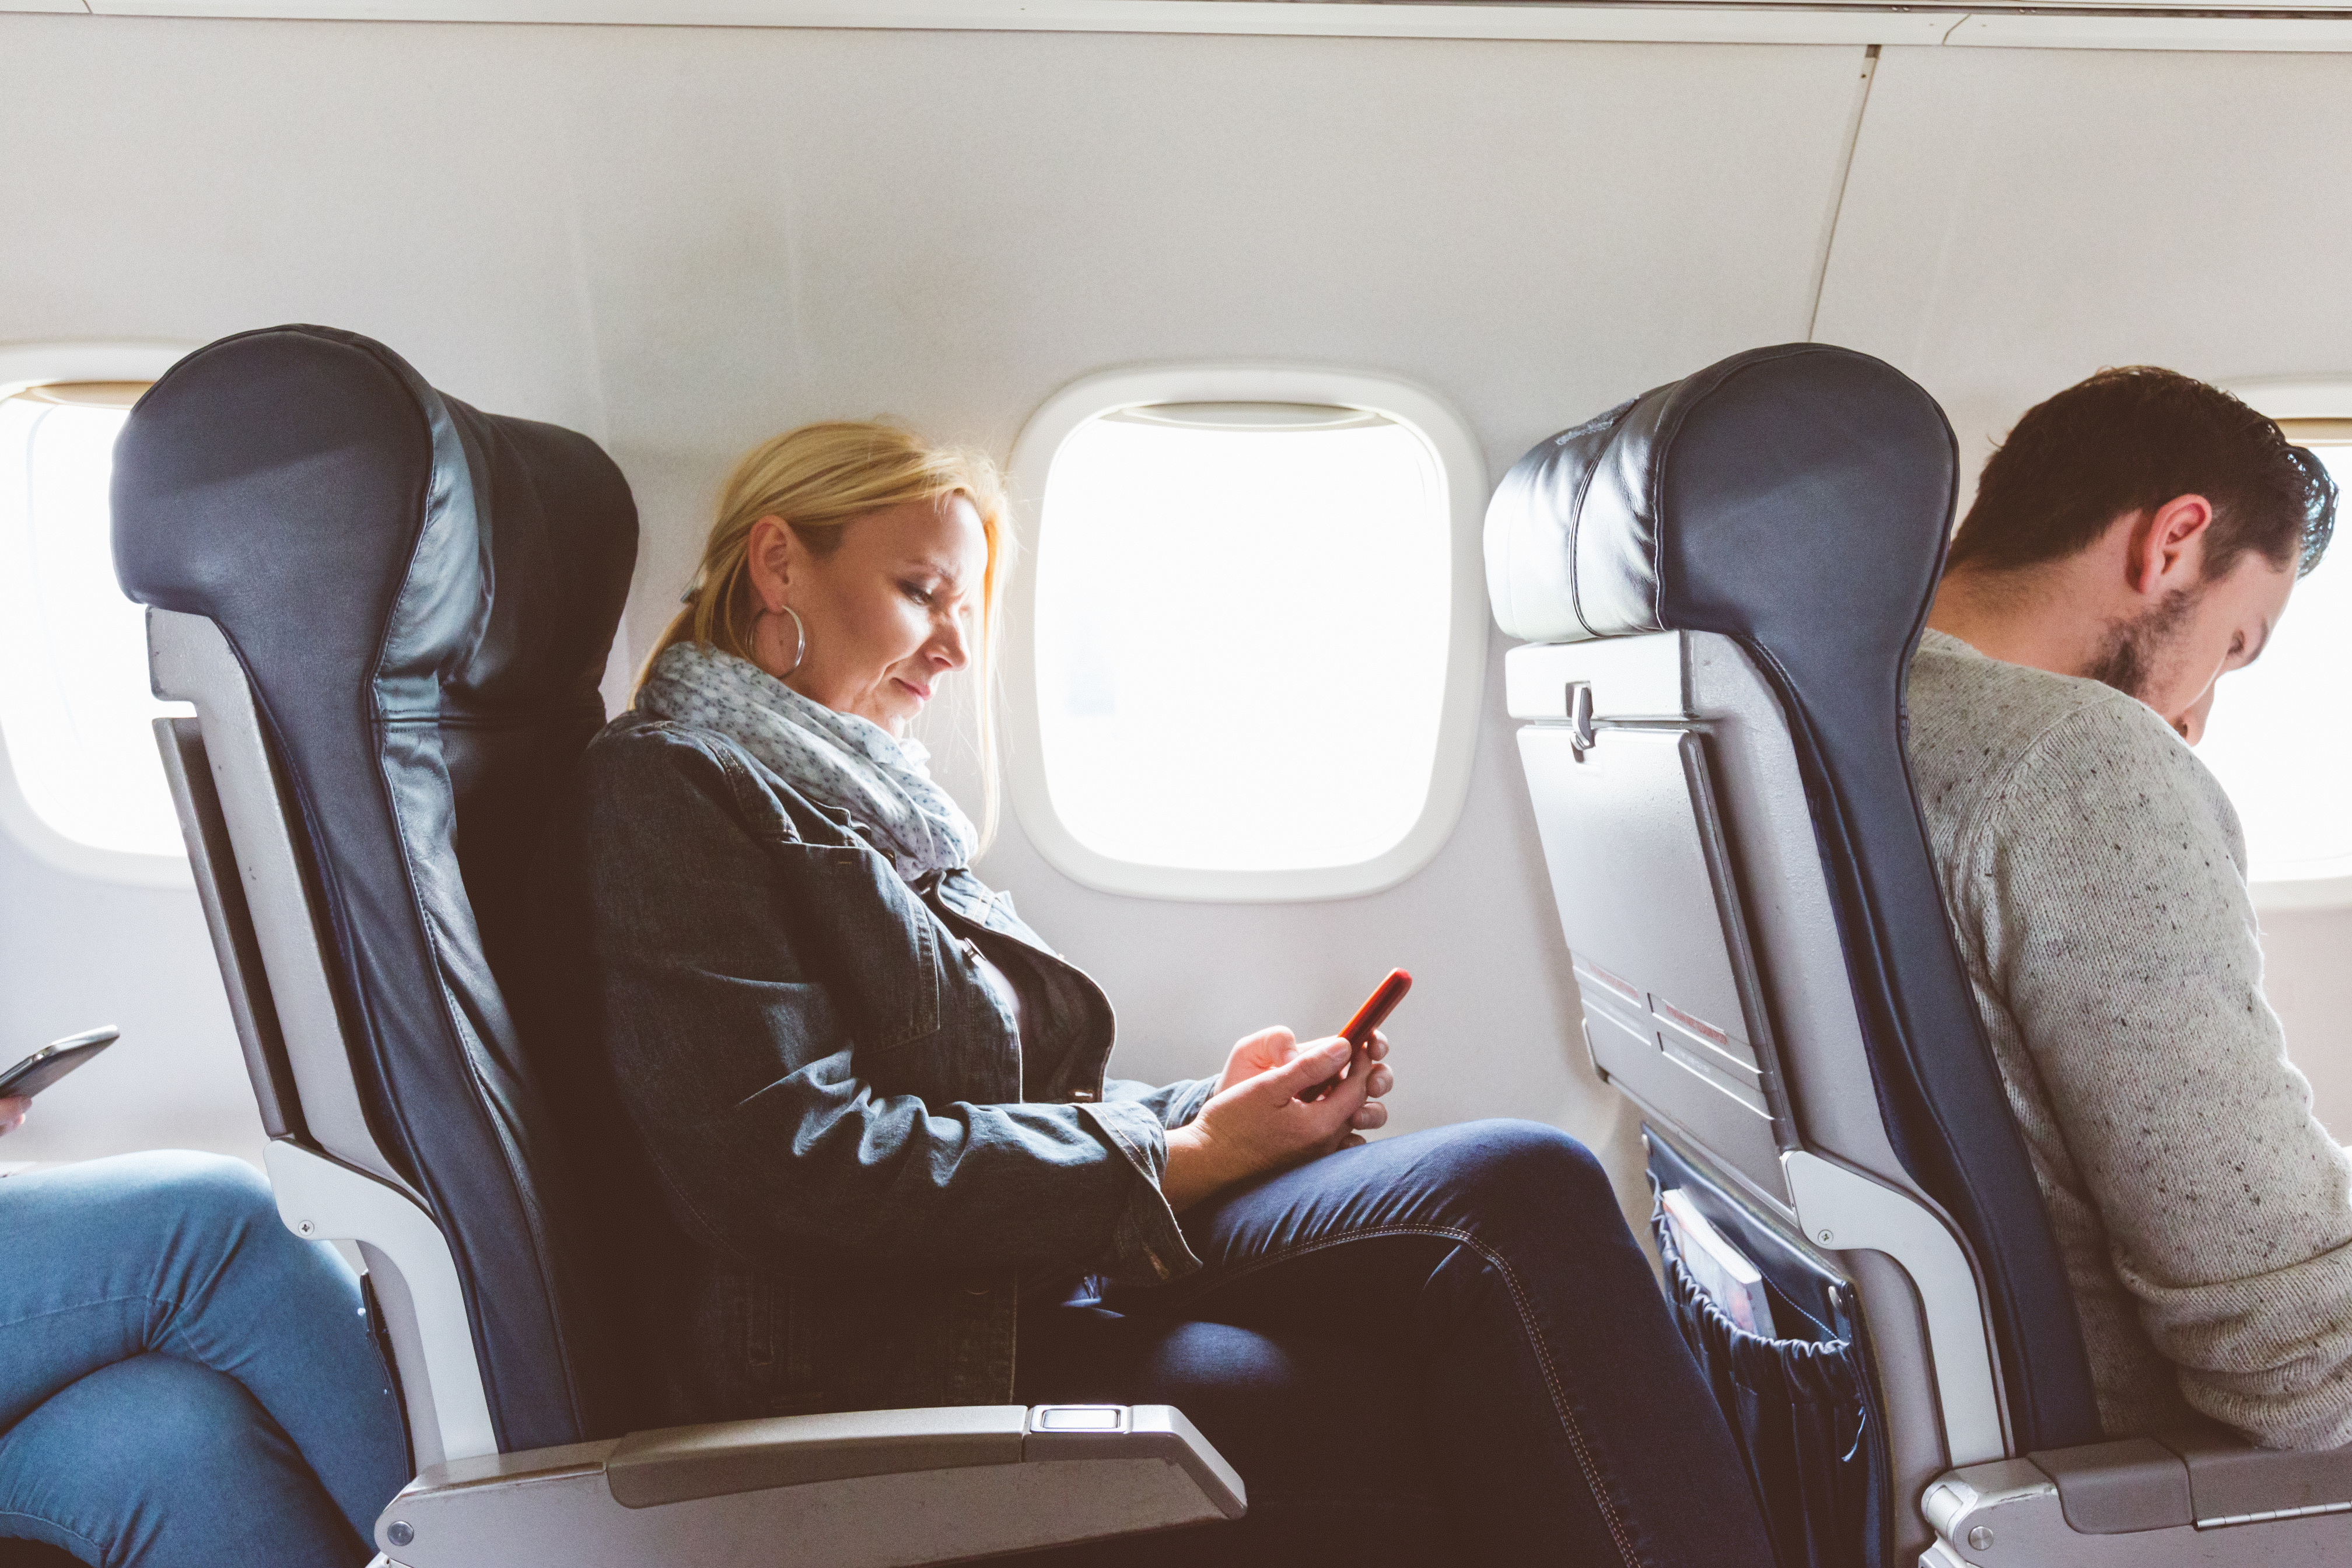 The debate over reclining plane seats never seems to end. Blame airlines.